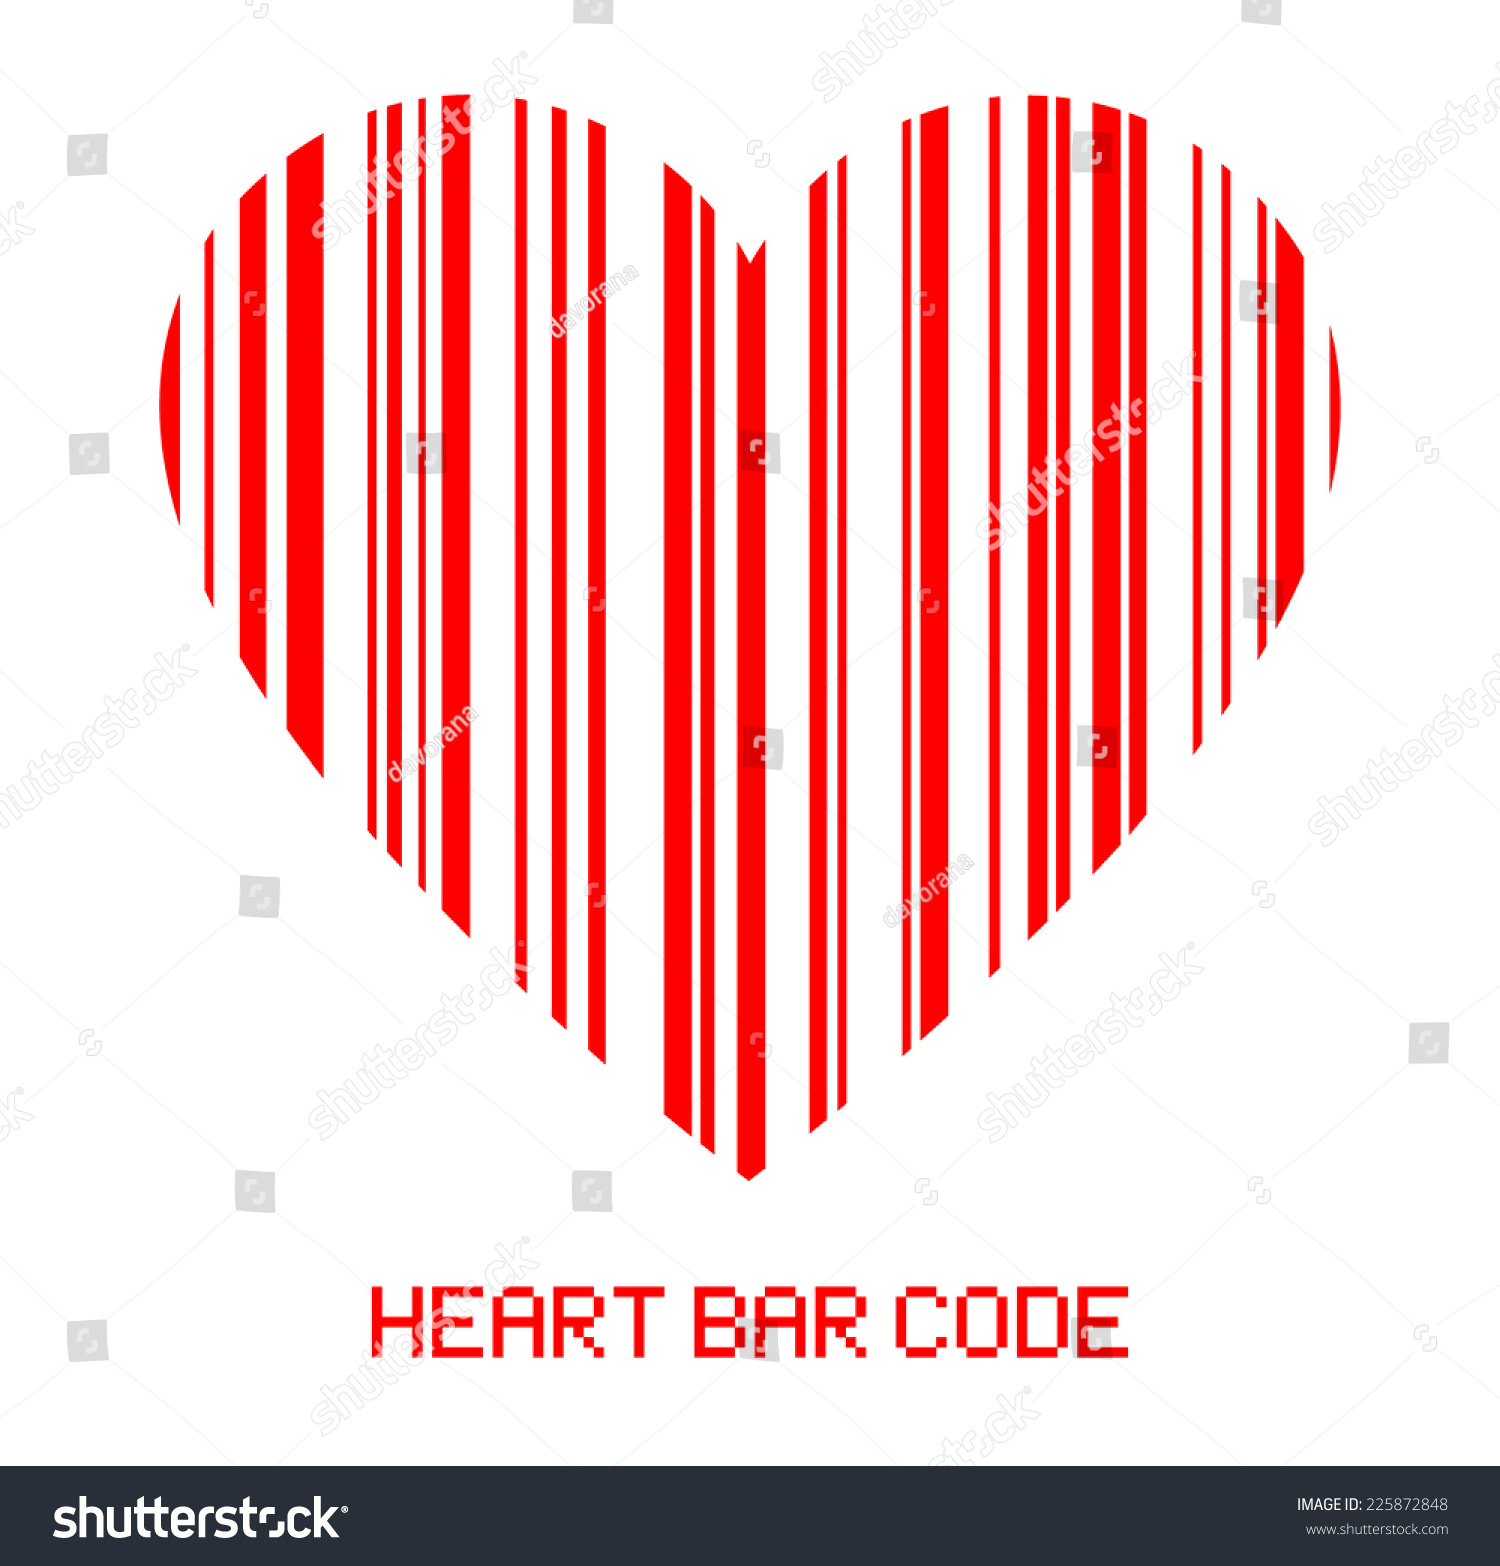 Barcode style heart shape symbol red stock vector 225872848 the barcode style heart shape symbol red color bar code sign design love for buycottarizona Choice Image